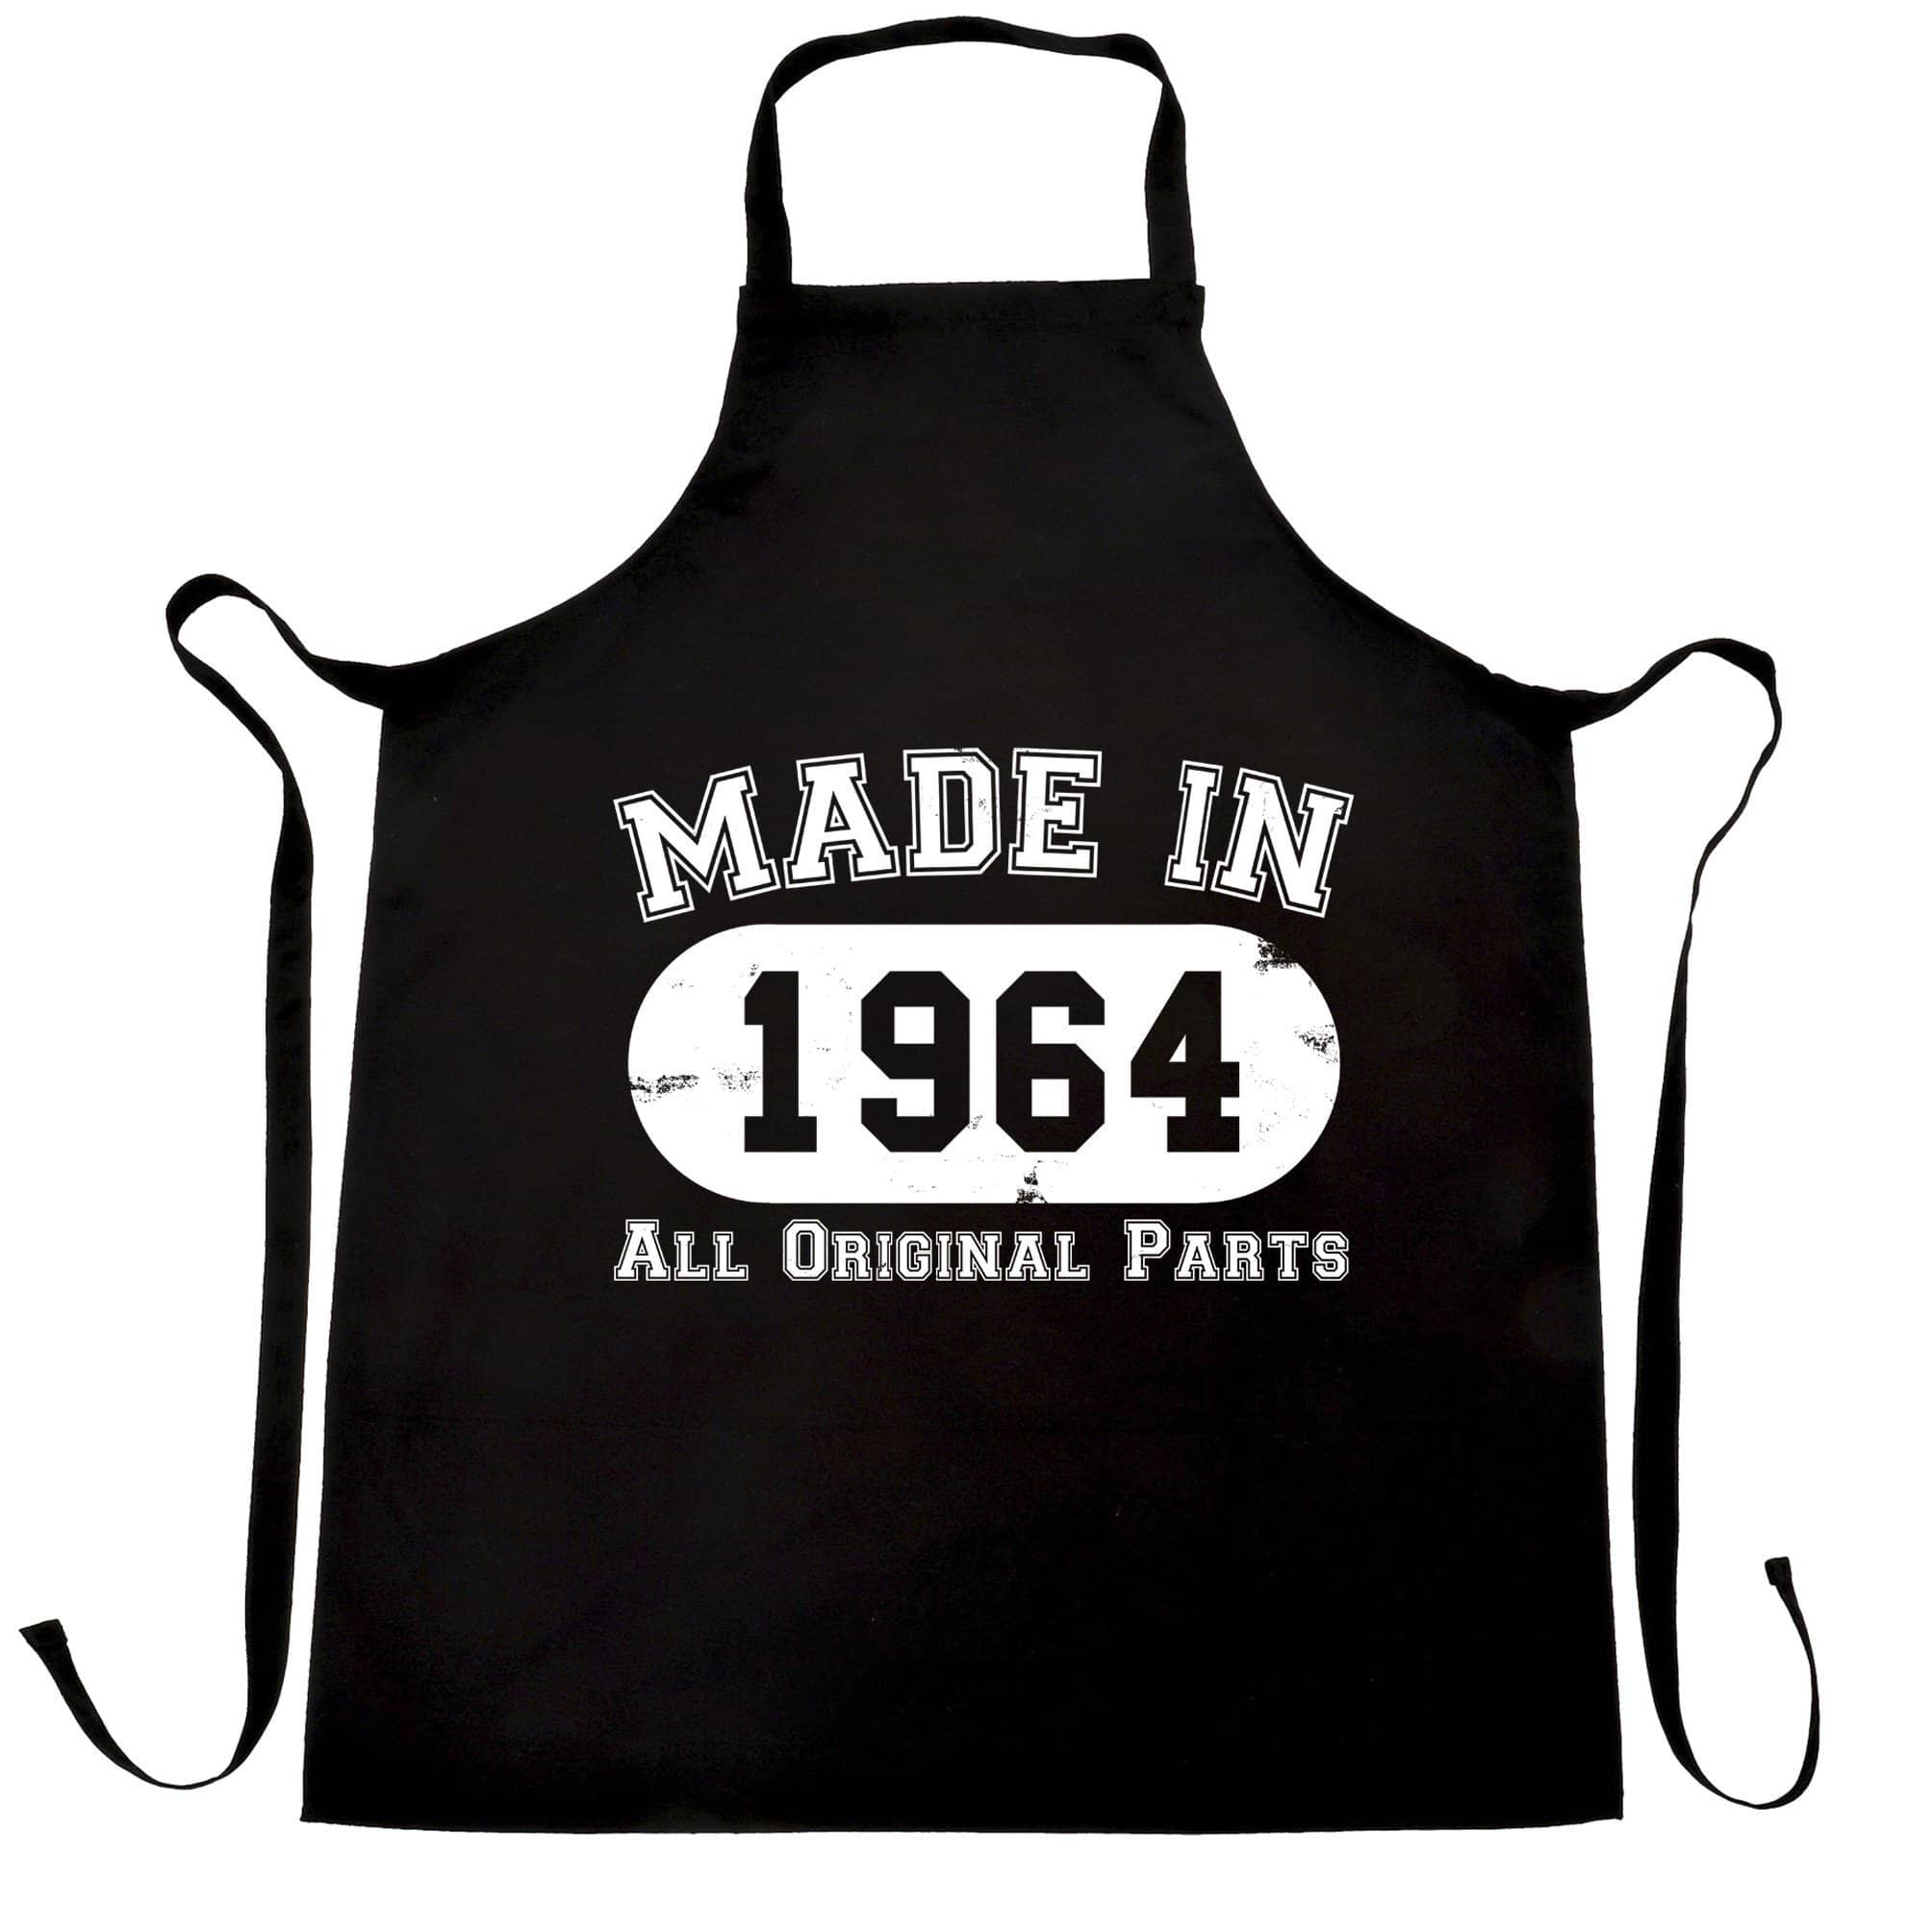 Made in 1964 All Original Parts Apron [Distressed]